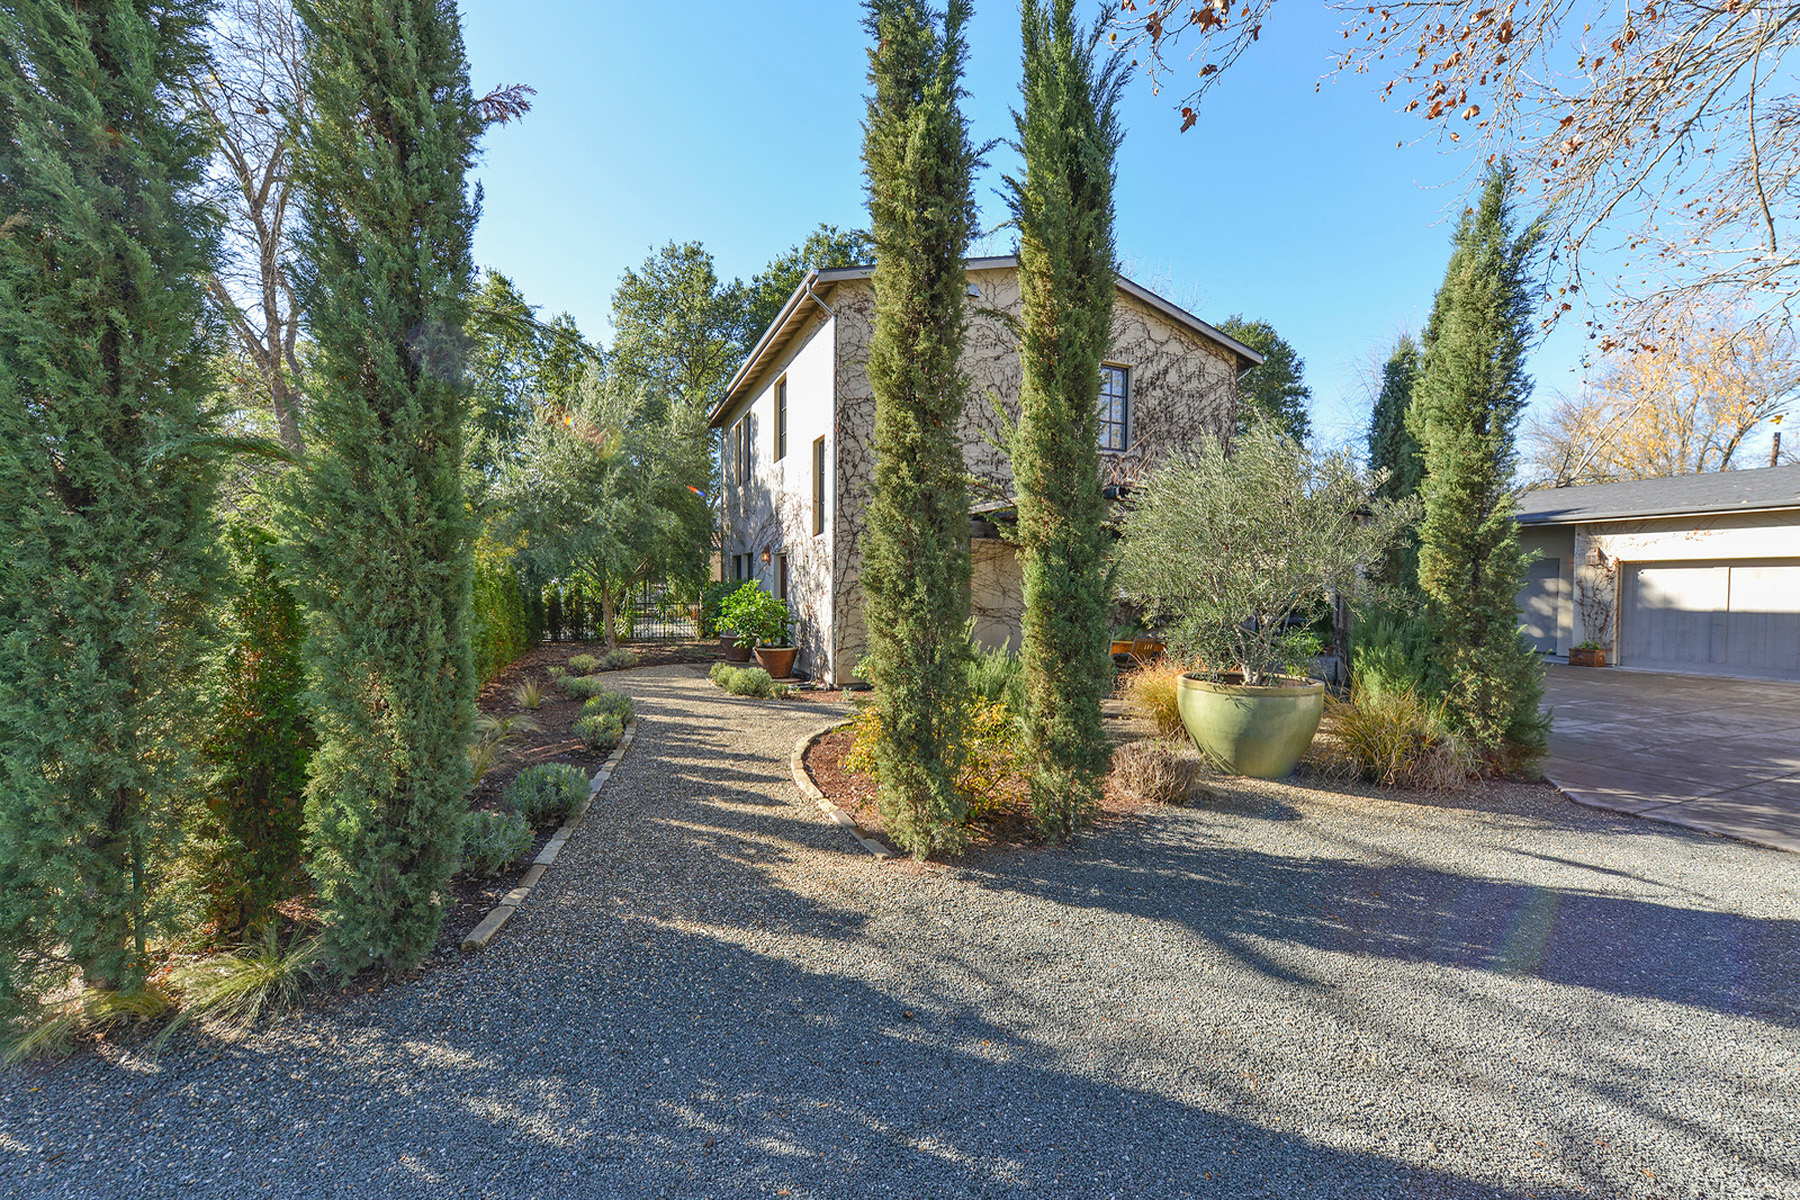 Property For Sale at 1519 Lake St, Calistoga, CA 94515